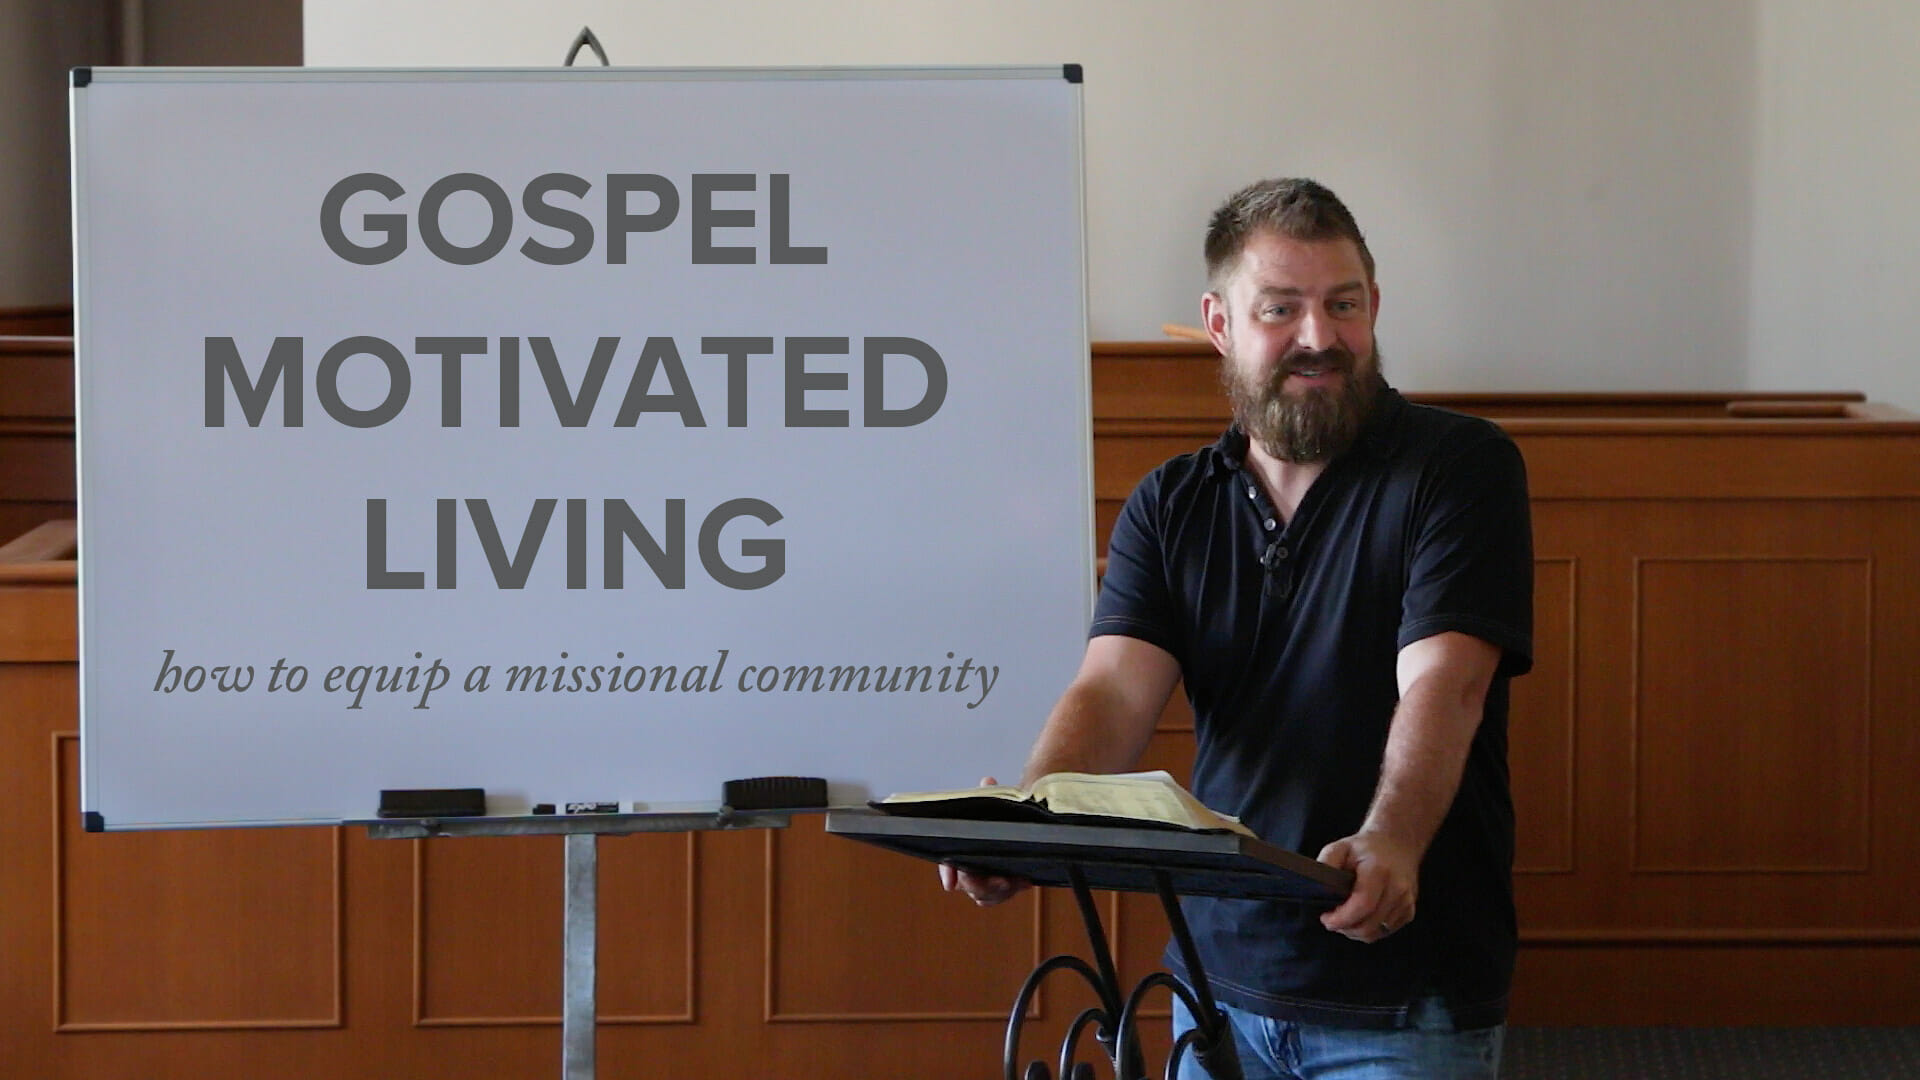 5---Gospel-Motivated-Living